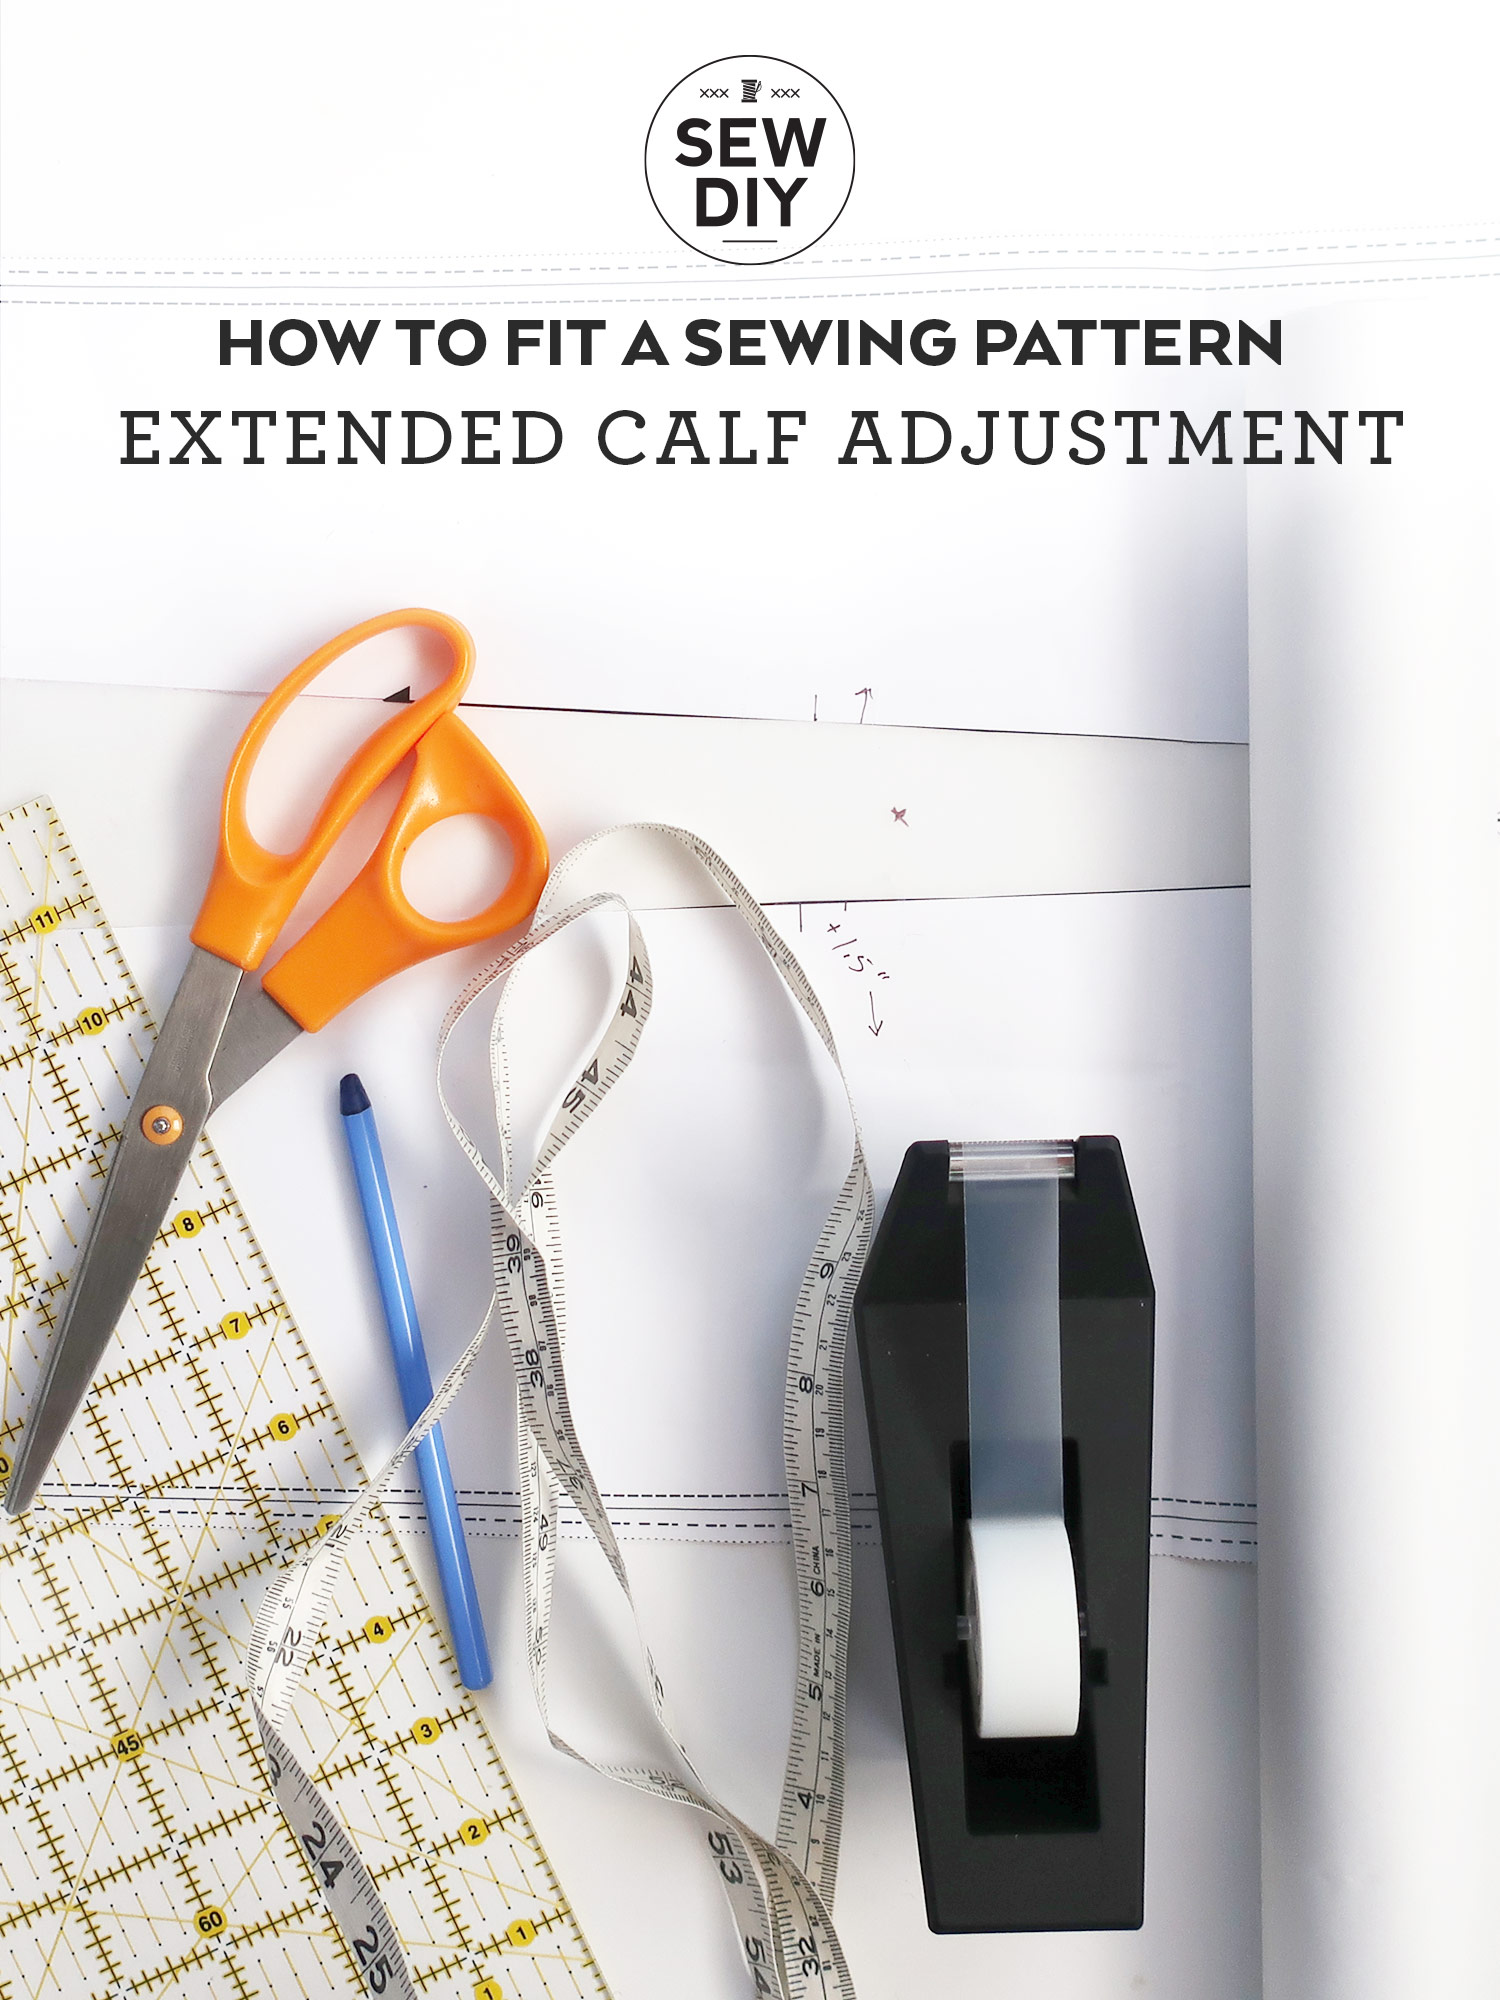 How to make a full calf adjustment Sewing tutorial   Sew DIY